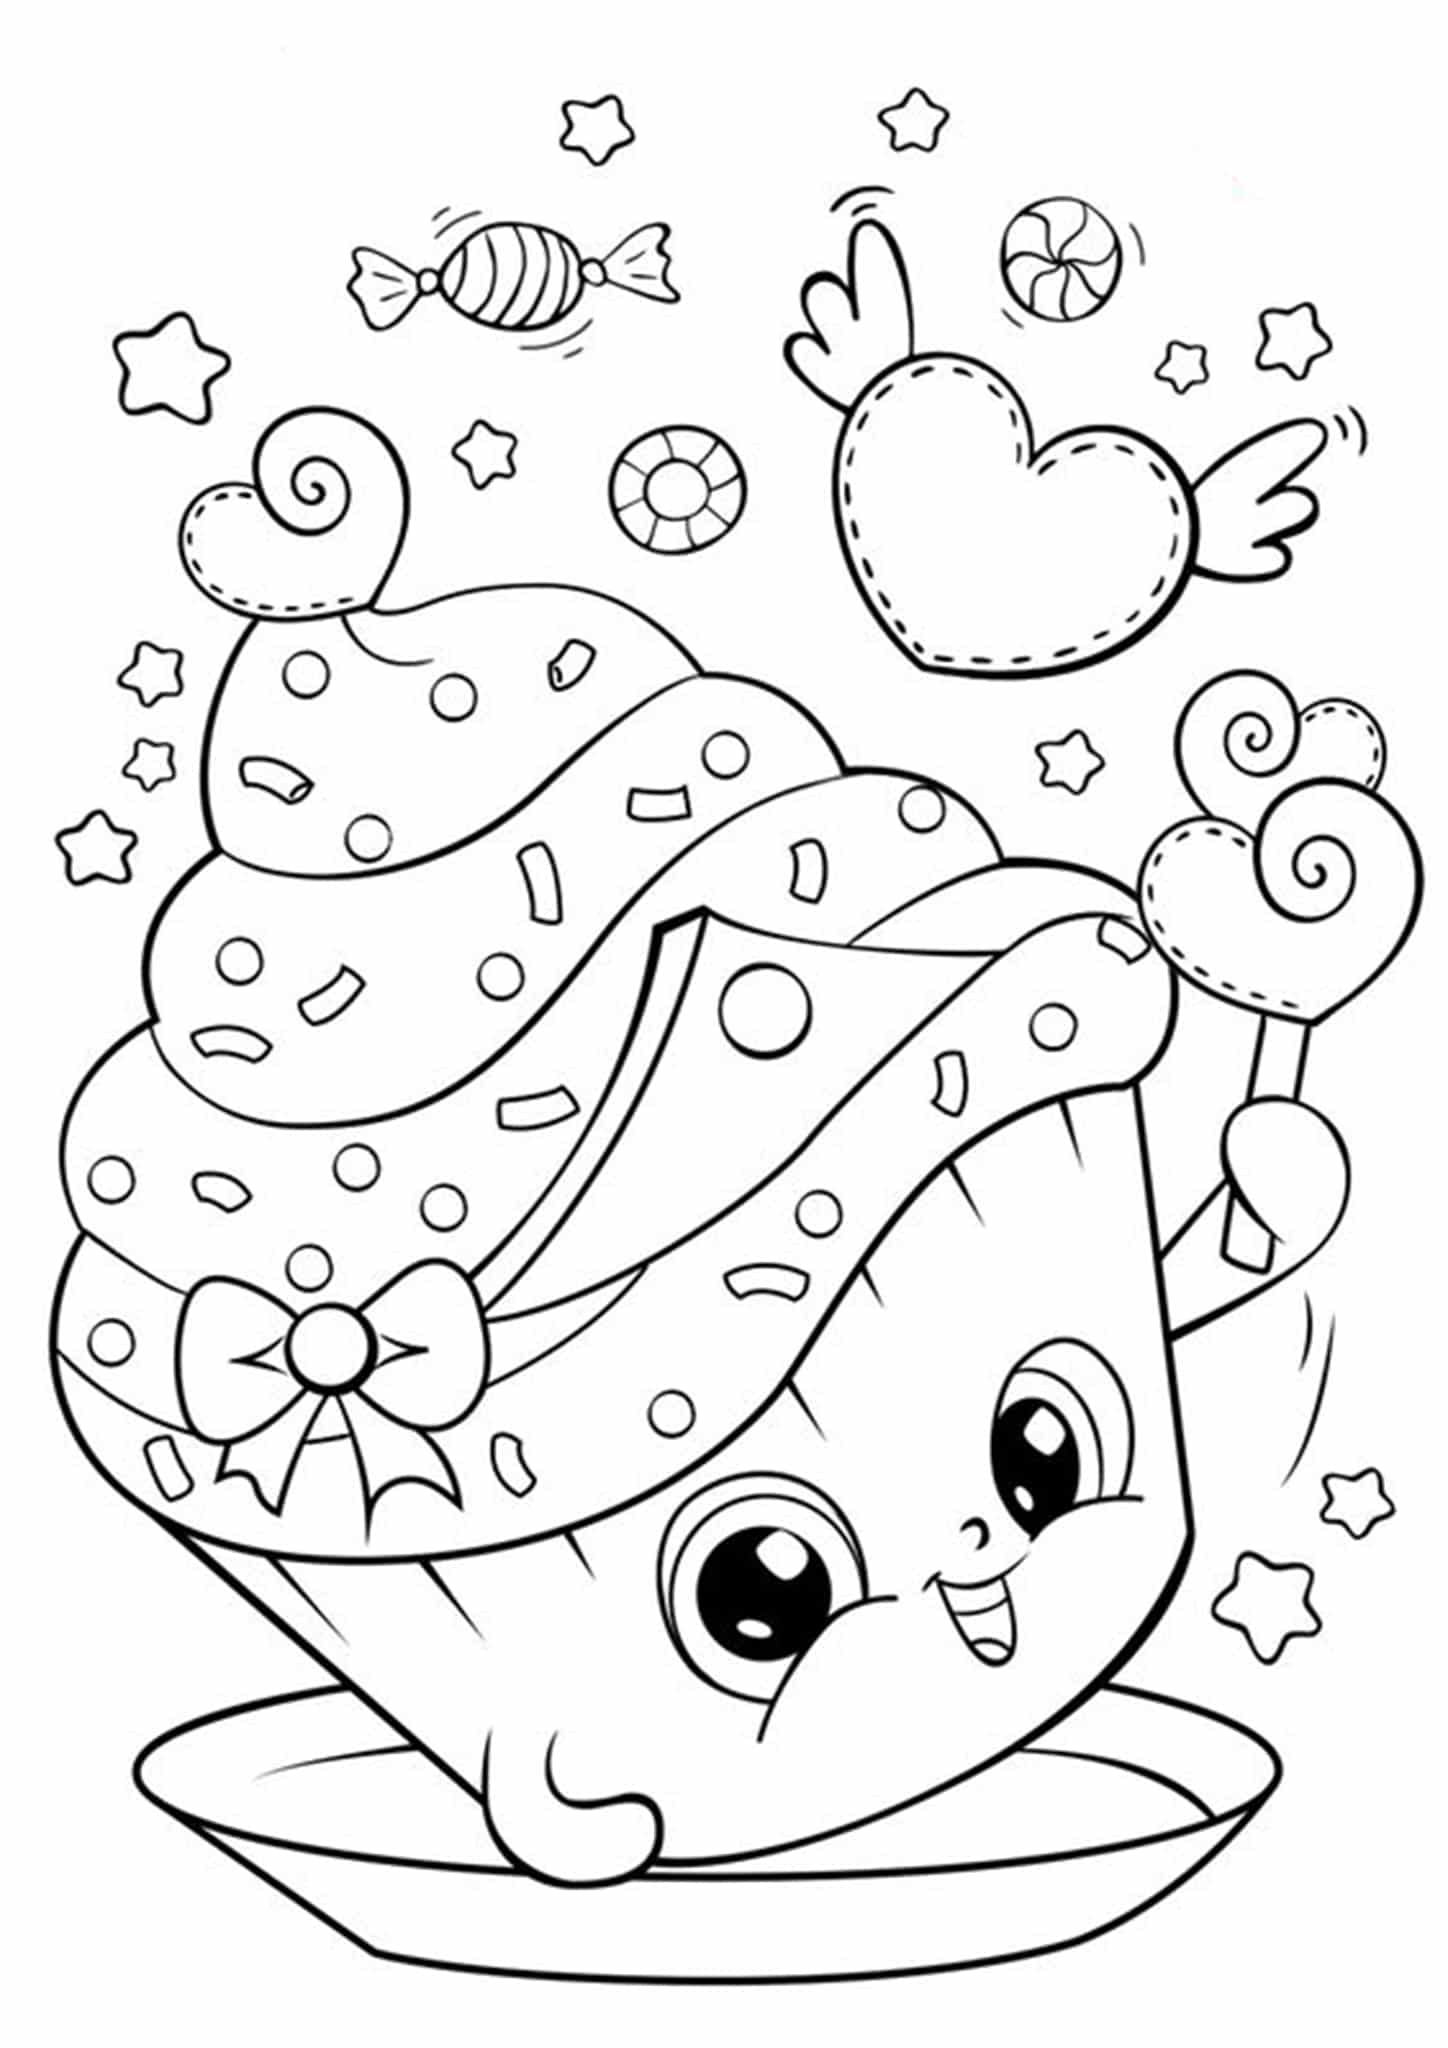 coloring worksheet easy color by letter easy coloring page coloring home worksheet easy coloring